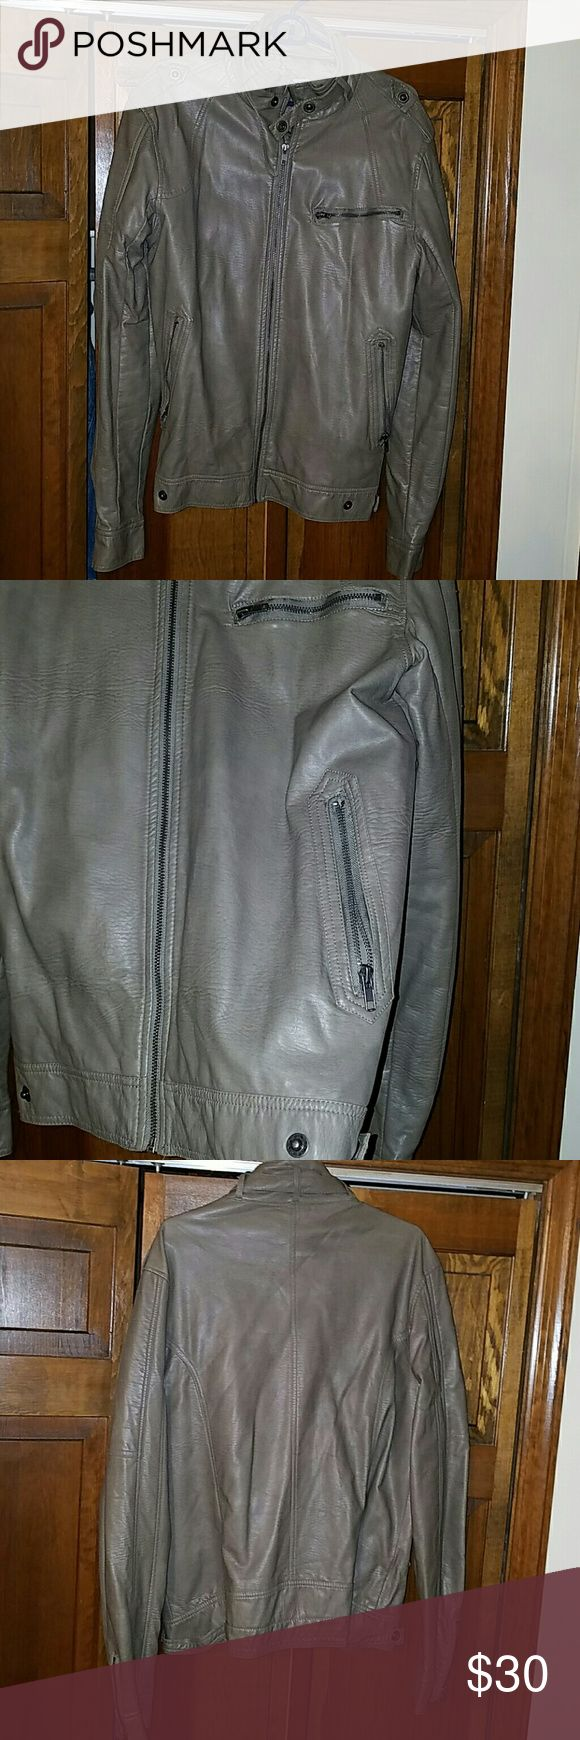 Men's faux leather jacket Faux leather jacket in a cool grey perfect to throw over a nice sweater. A great statement piece for any guy wanting to add edge to his wardrobe Charles And A Half Jackets & Coats Military & Field